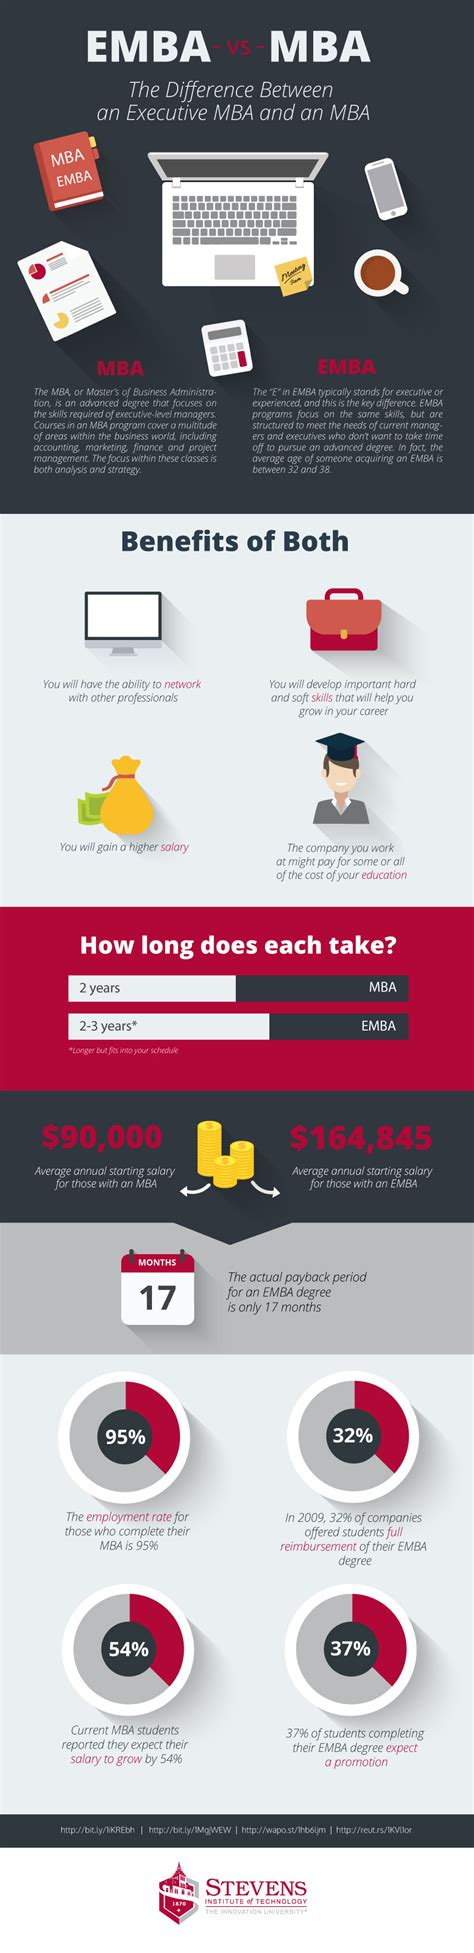 Mba Vs Emba Which Is Better by Emba Vs Mba The 6 Things You Need To Before Deciding